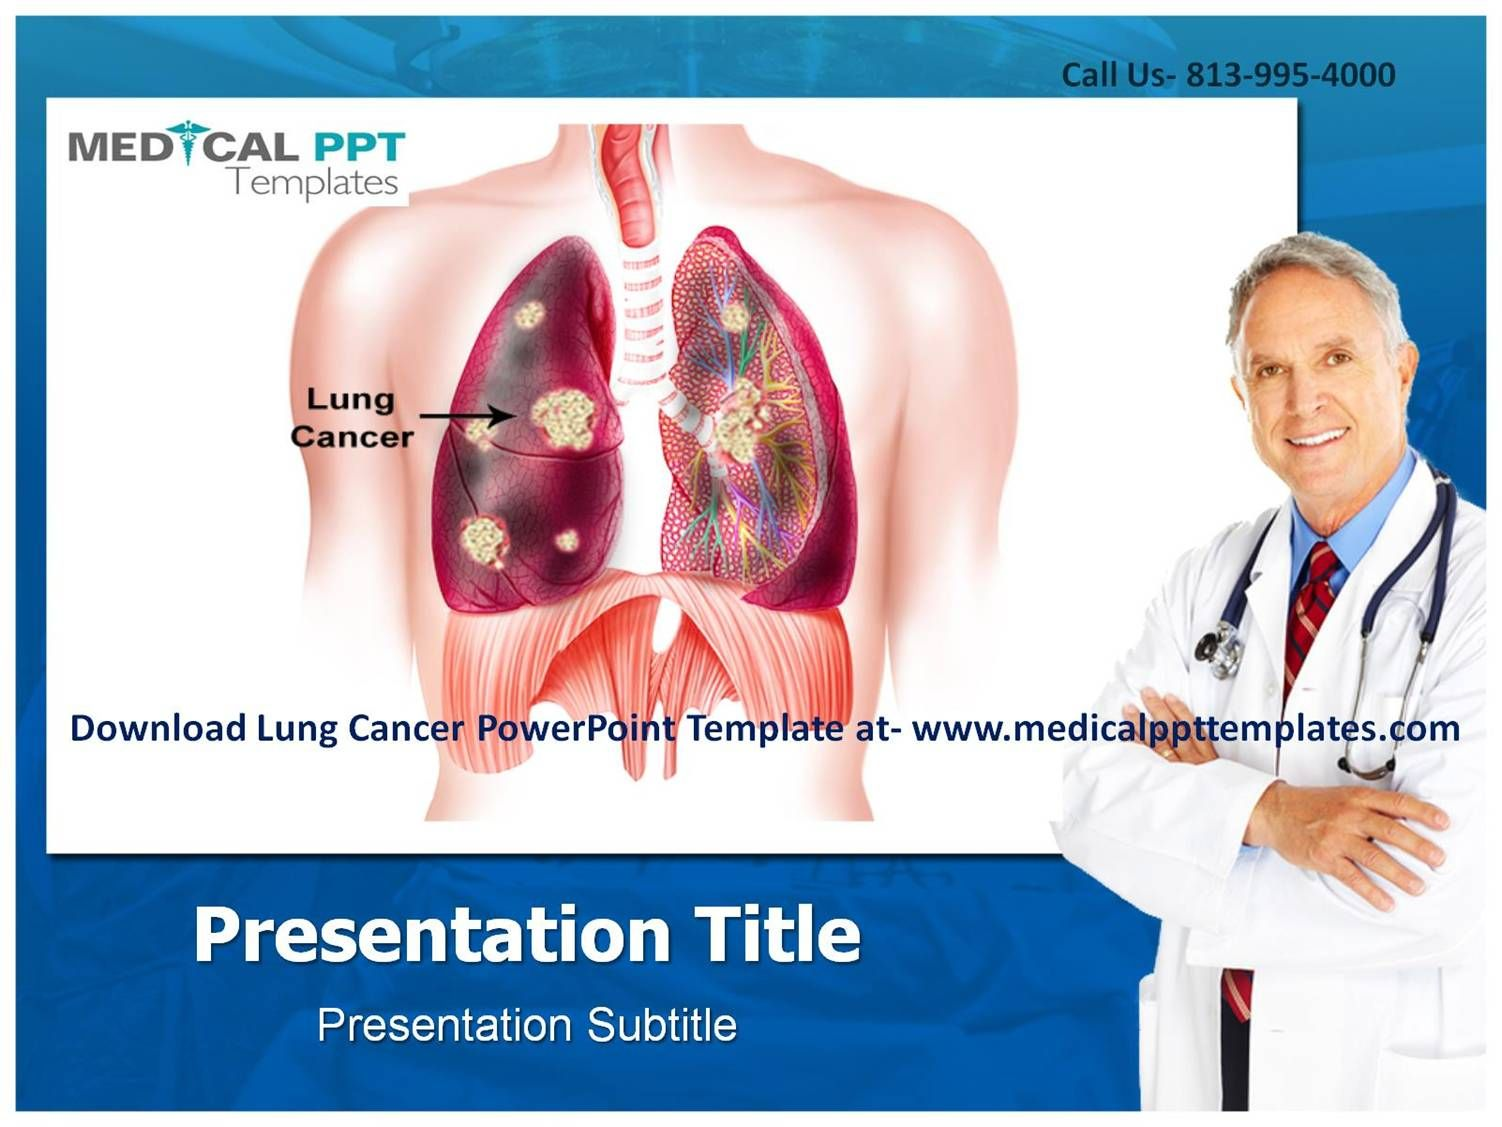 Download lung cancer powerpoint template cancer templates download lung cancer powerpoint template alramifo Choice Image